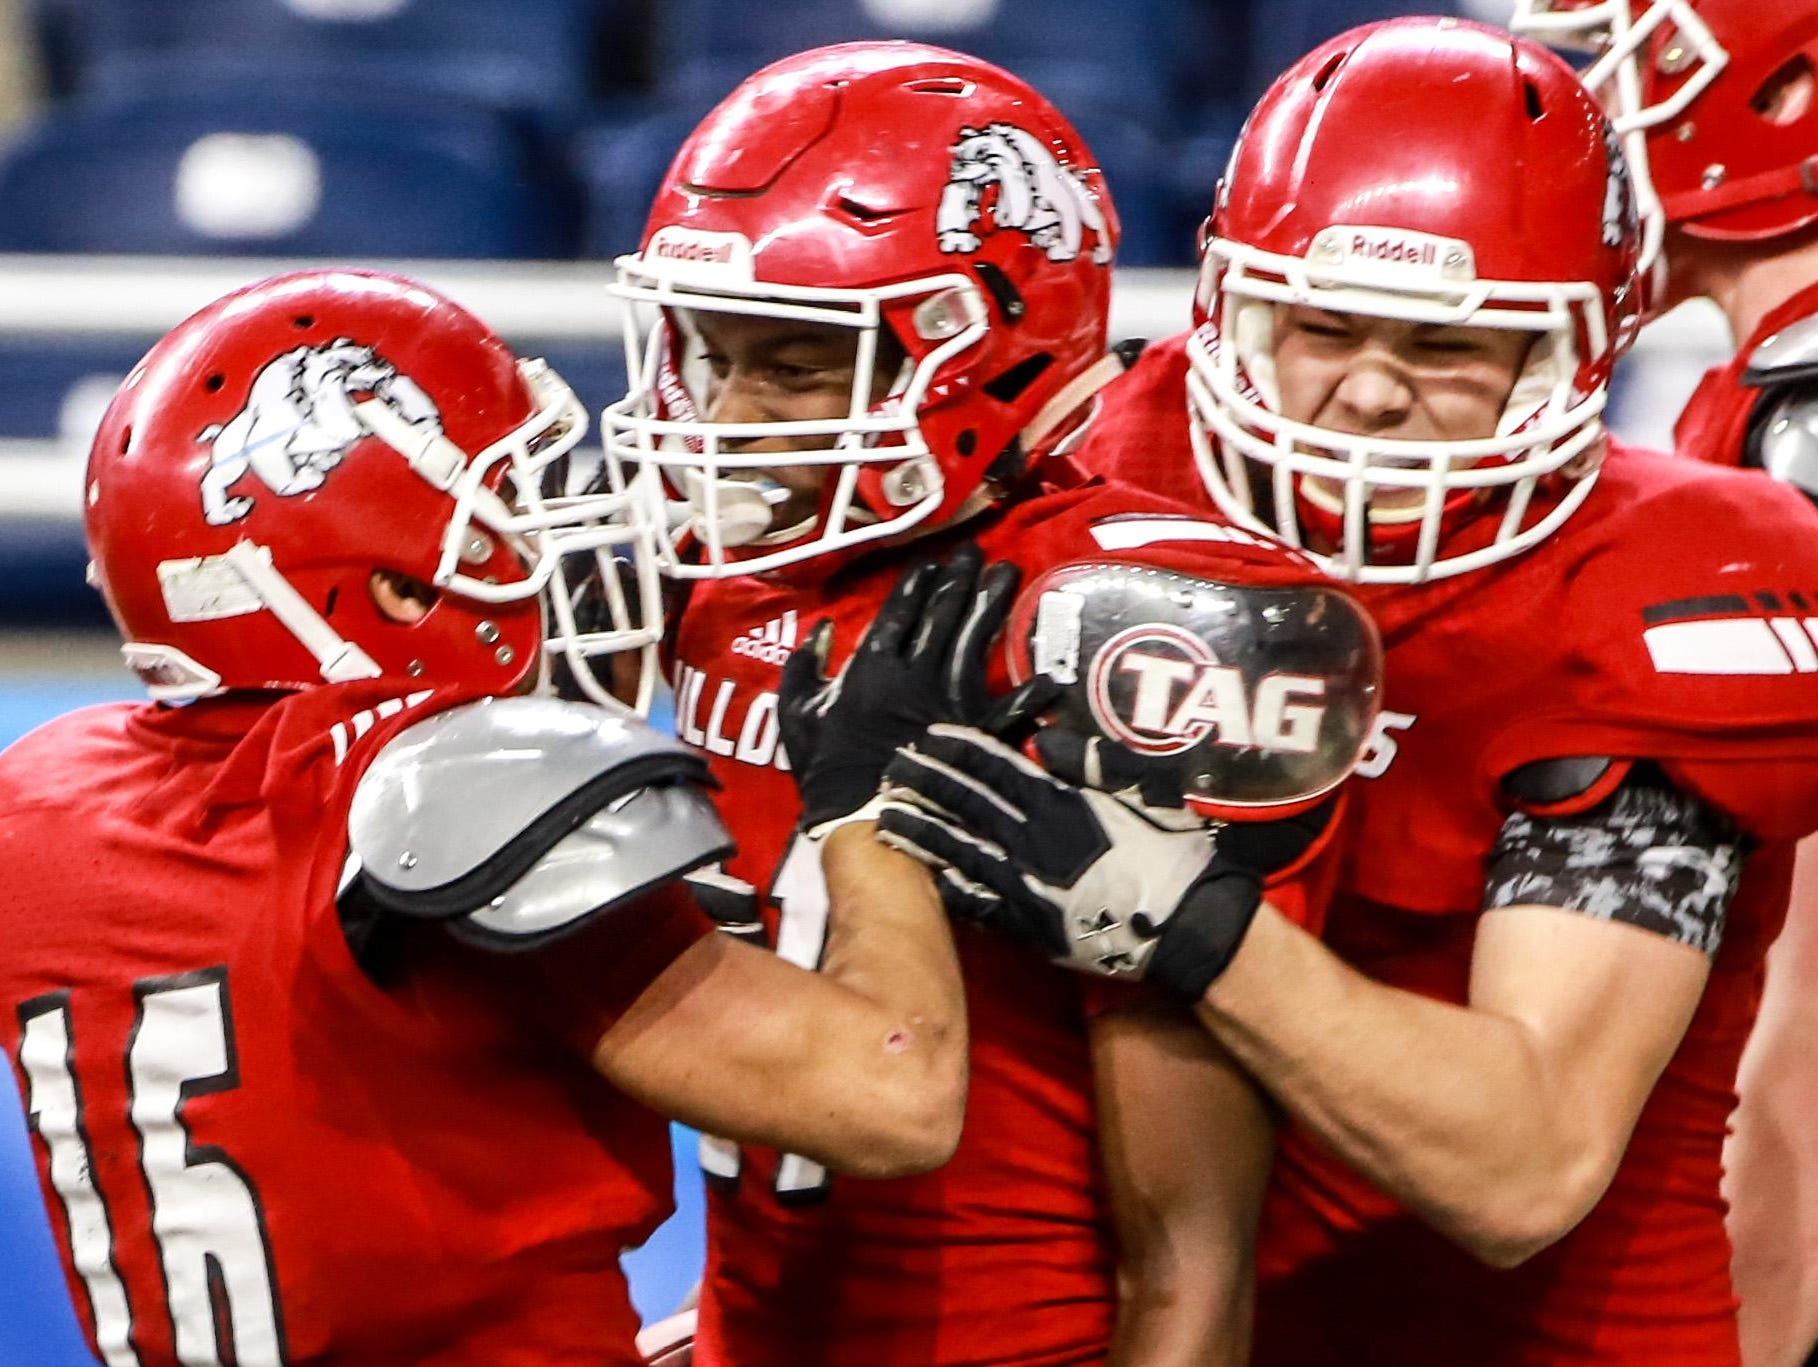 Romeo senior wide receiver Brad Tanner, center, celebrates scoring a touchdown with his teammates during a 41-27 win over Detroit Cass Tech in the Division 1 state championship.